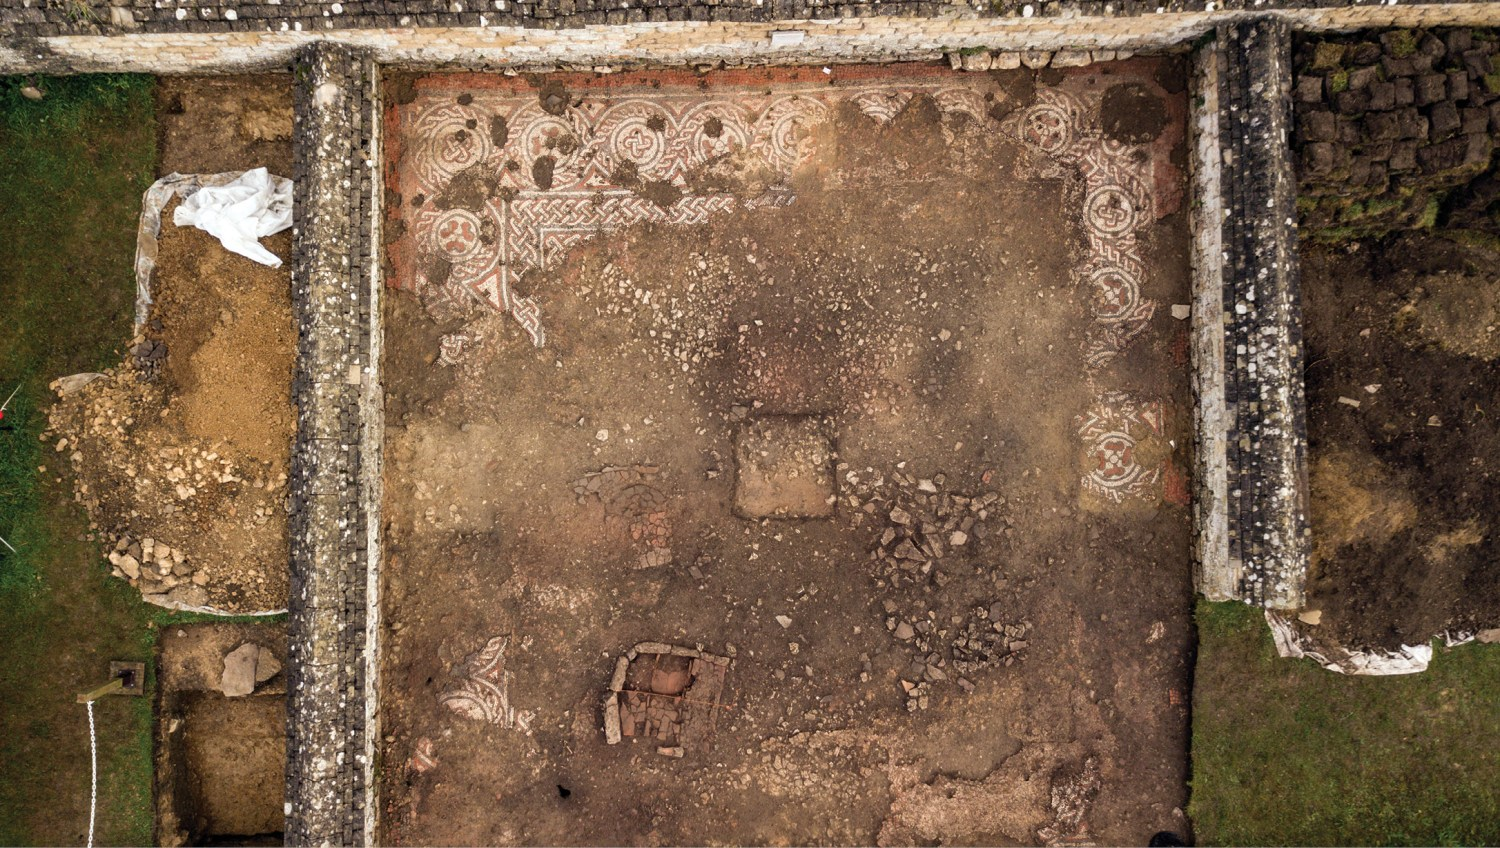 below Only fragments of Room 28's once-grand mosaic survive today. On the left side of the photograph, the trenches opened in Room 27 can be seen; meanwhile, turfs from the excavation have been stacked in Room 29 on the right.